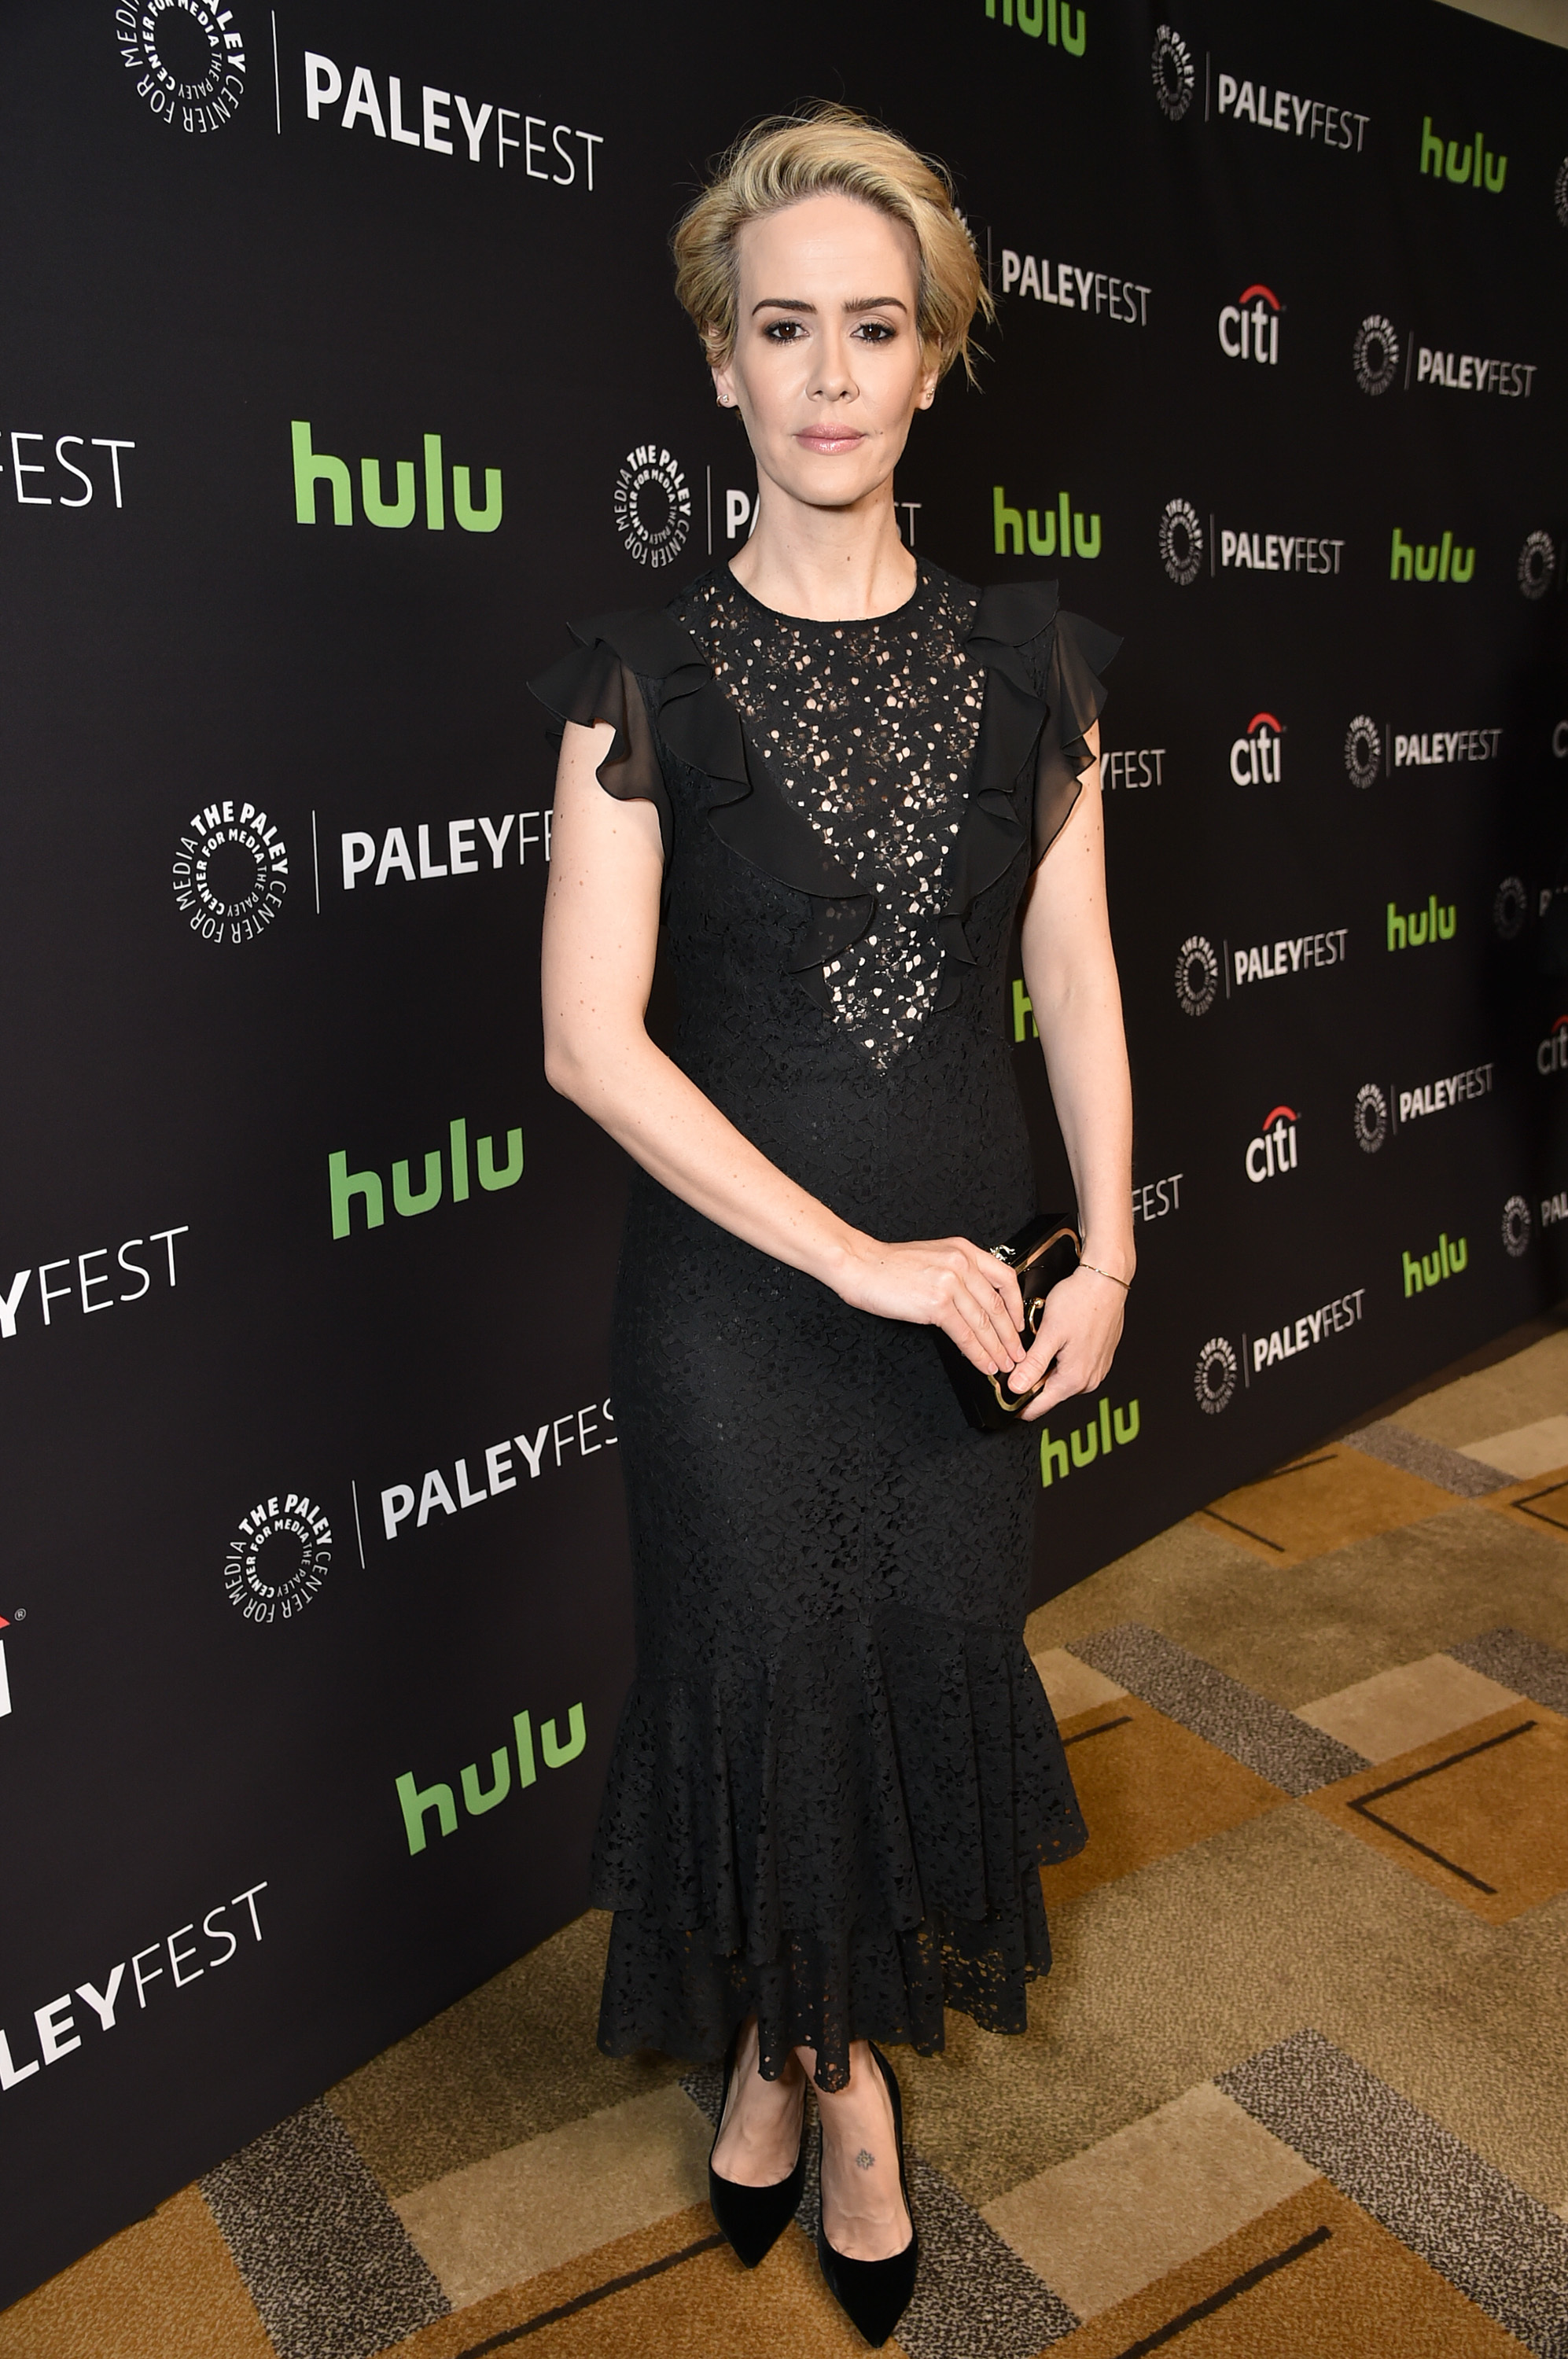 Sarah Paulson: 'You should be able to love whomever you f ing well please'